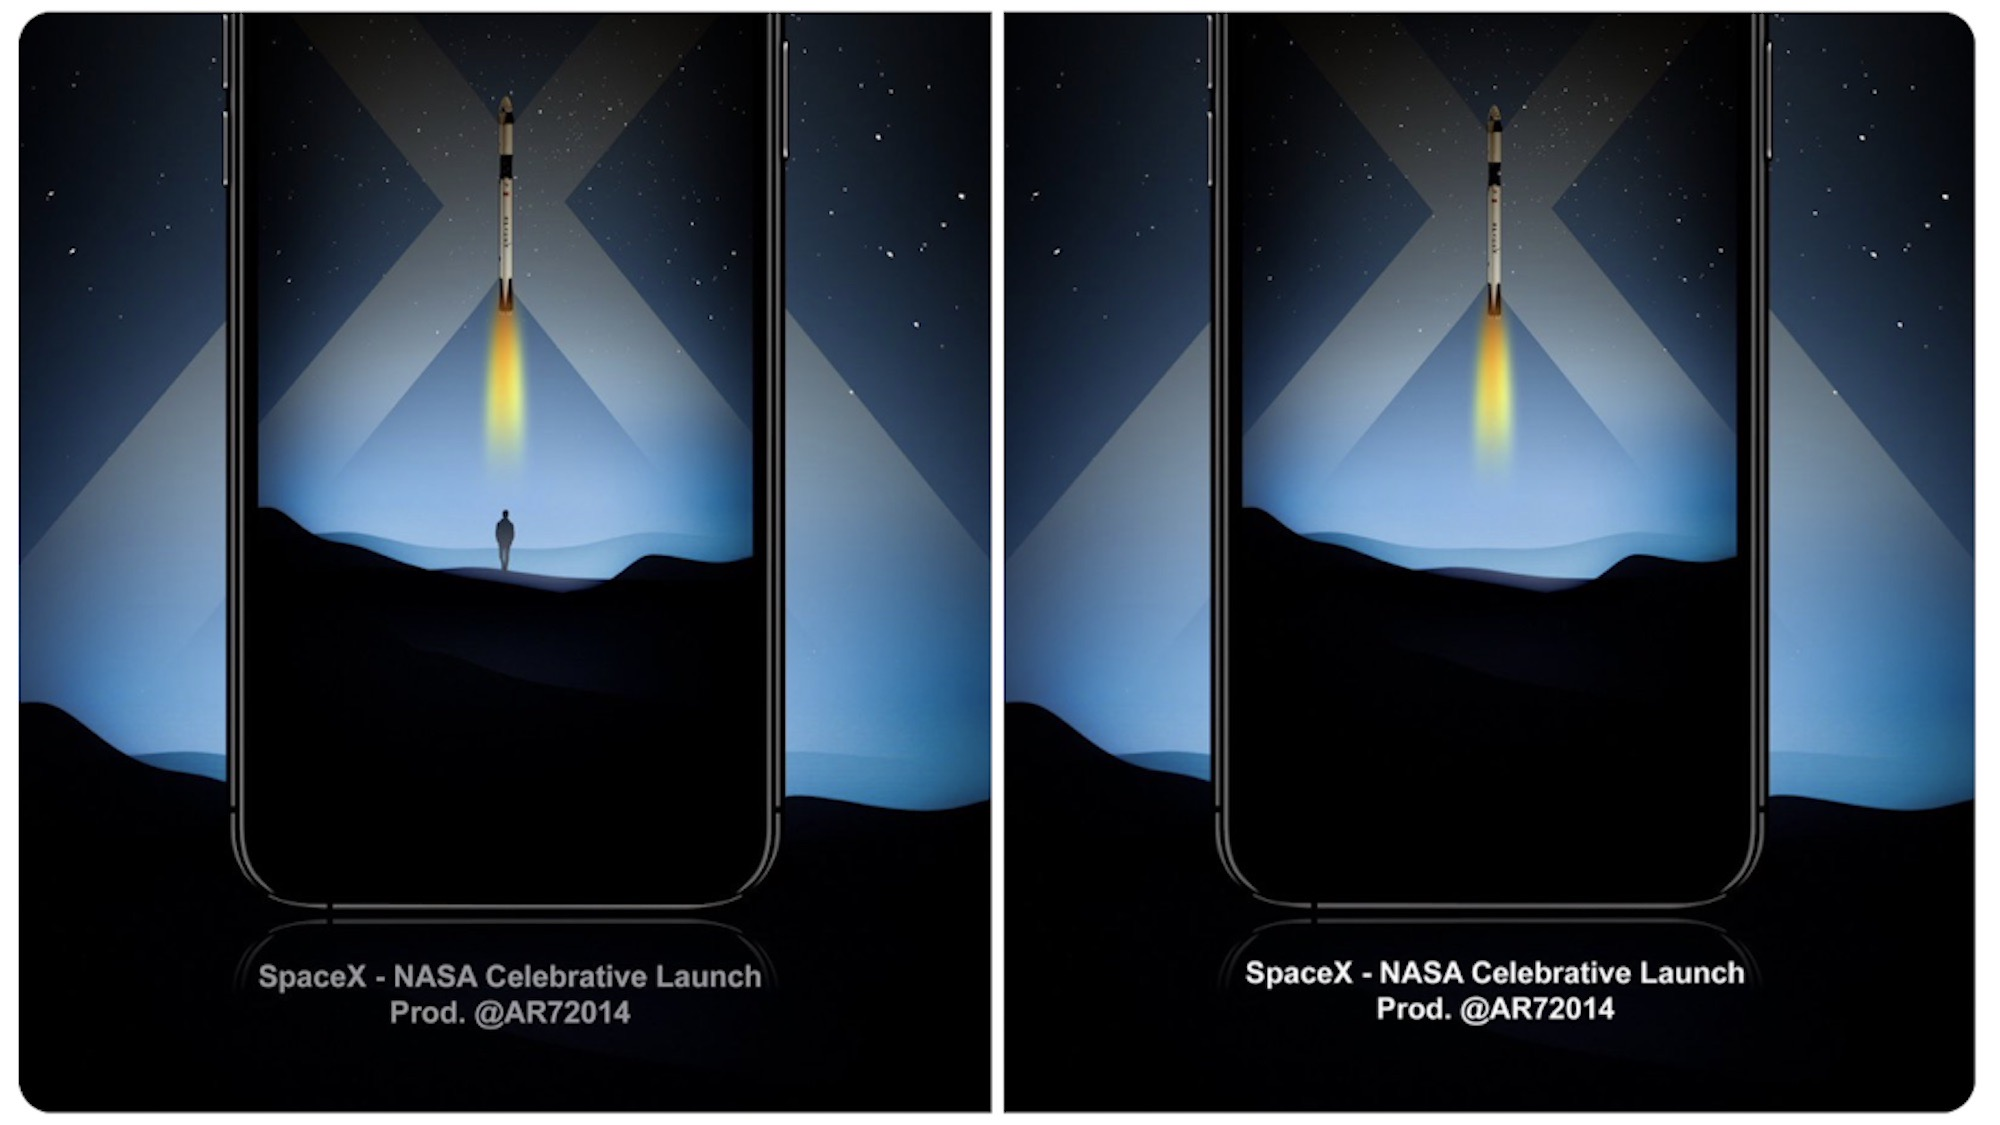 iPhone wallpapers from designer 'AR7' celebrate historic SpaceX NASA astronaut launch - Space Explored